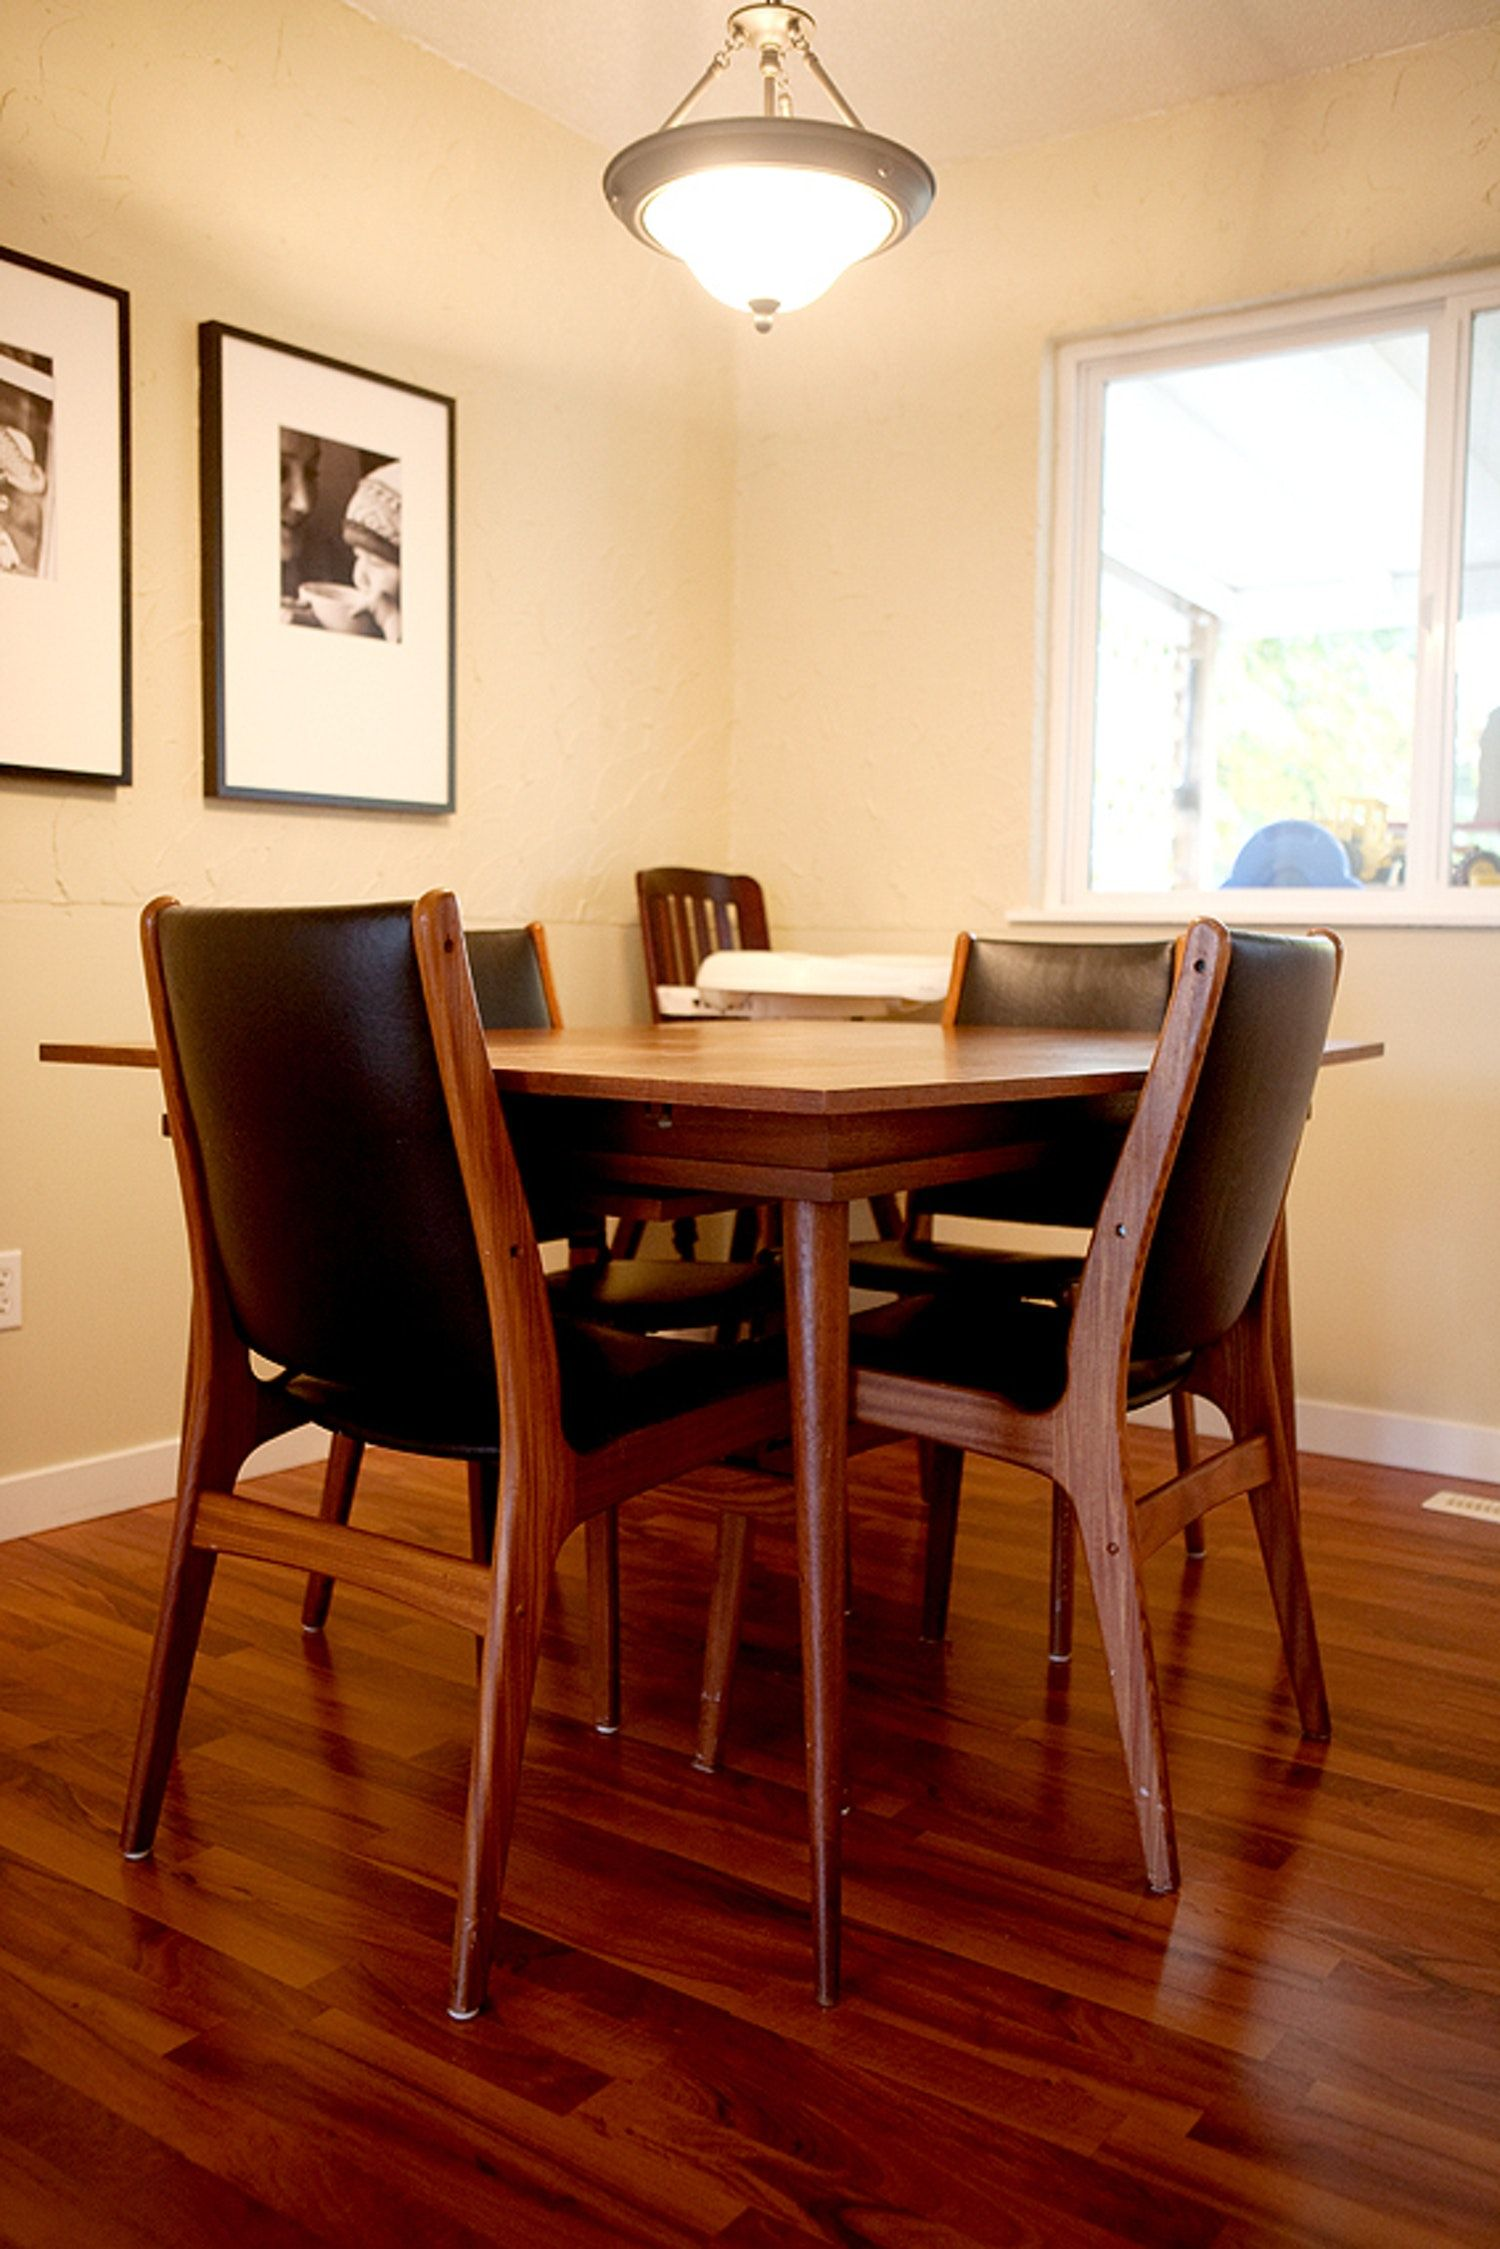 Best Way To Refinish A Teak Dining Table Ideas For Better Living